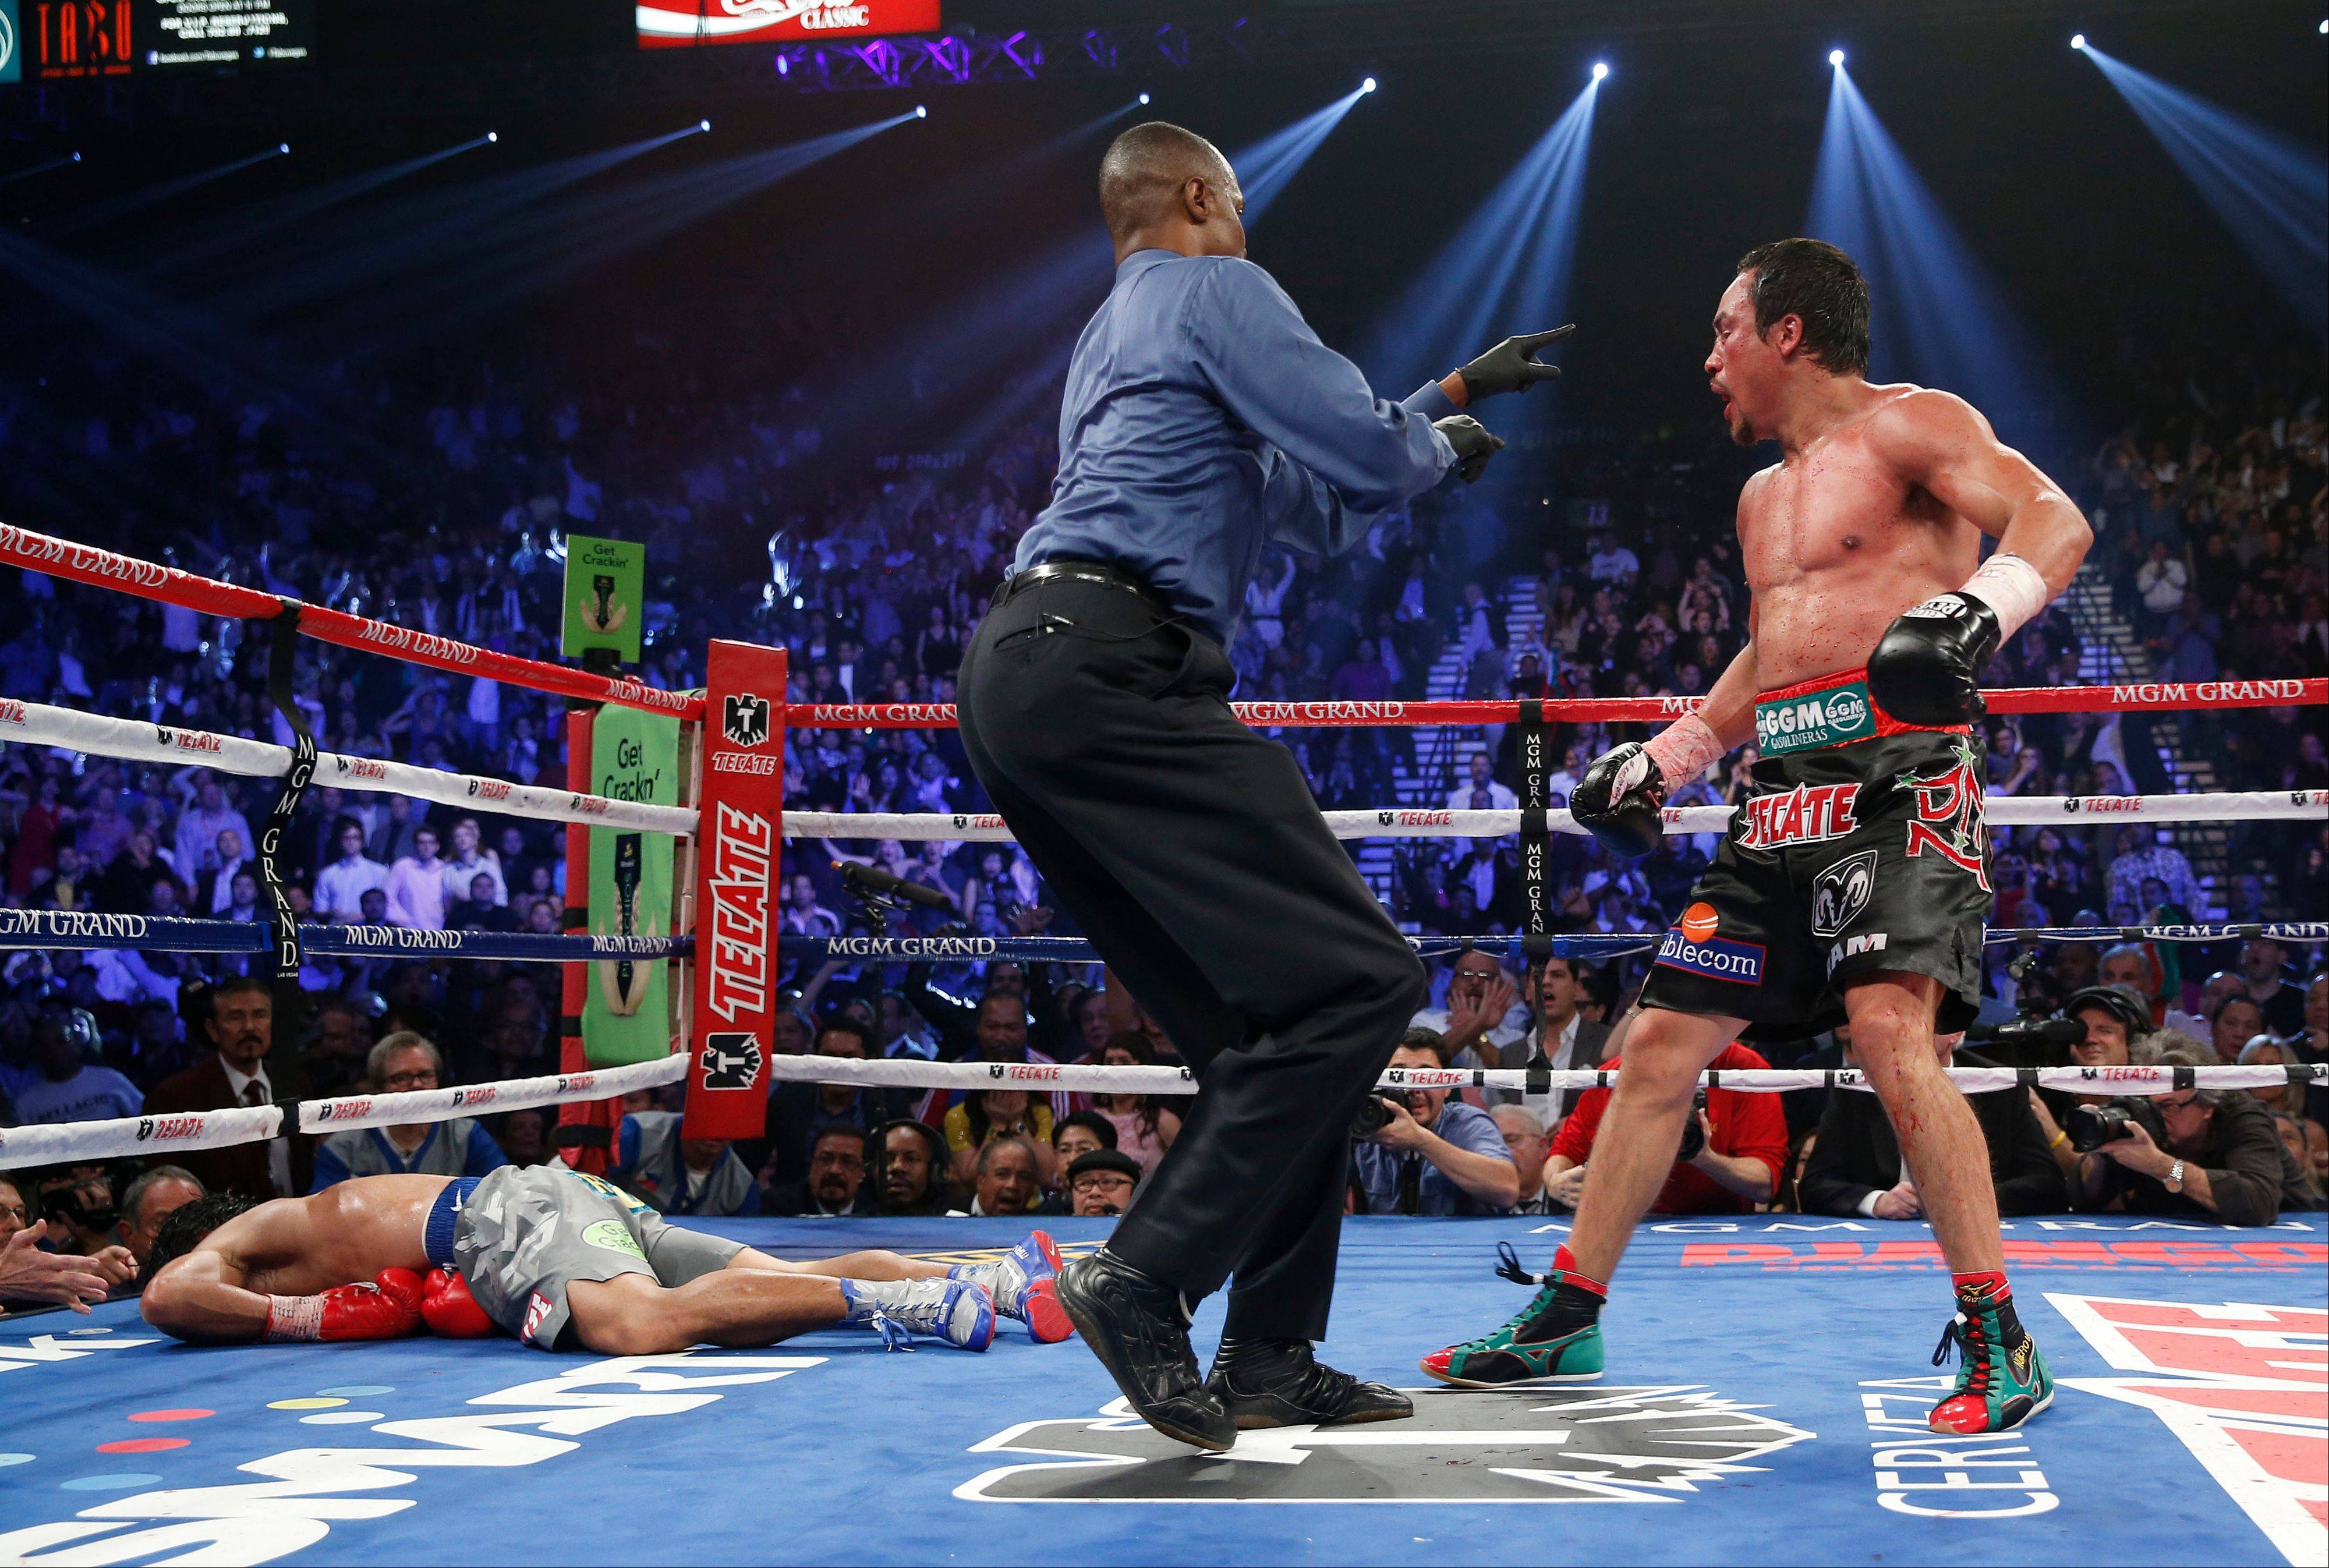 Referee Kenny Bayless sends Juan Manuel Marquez to his corner after Marquez knocked out Manny Pacquiao in the sixth round of their WBO world welterweight fight Saturdayin Las Vegas.